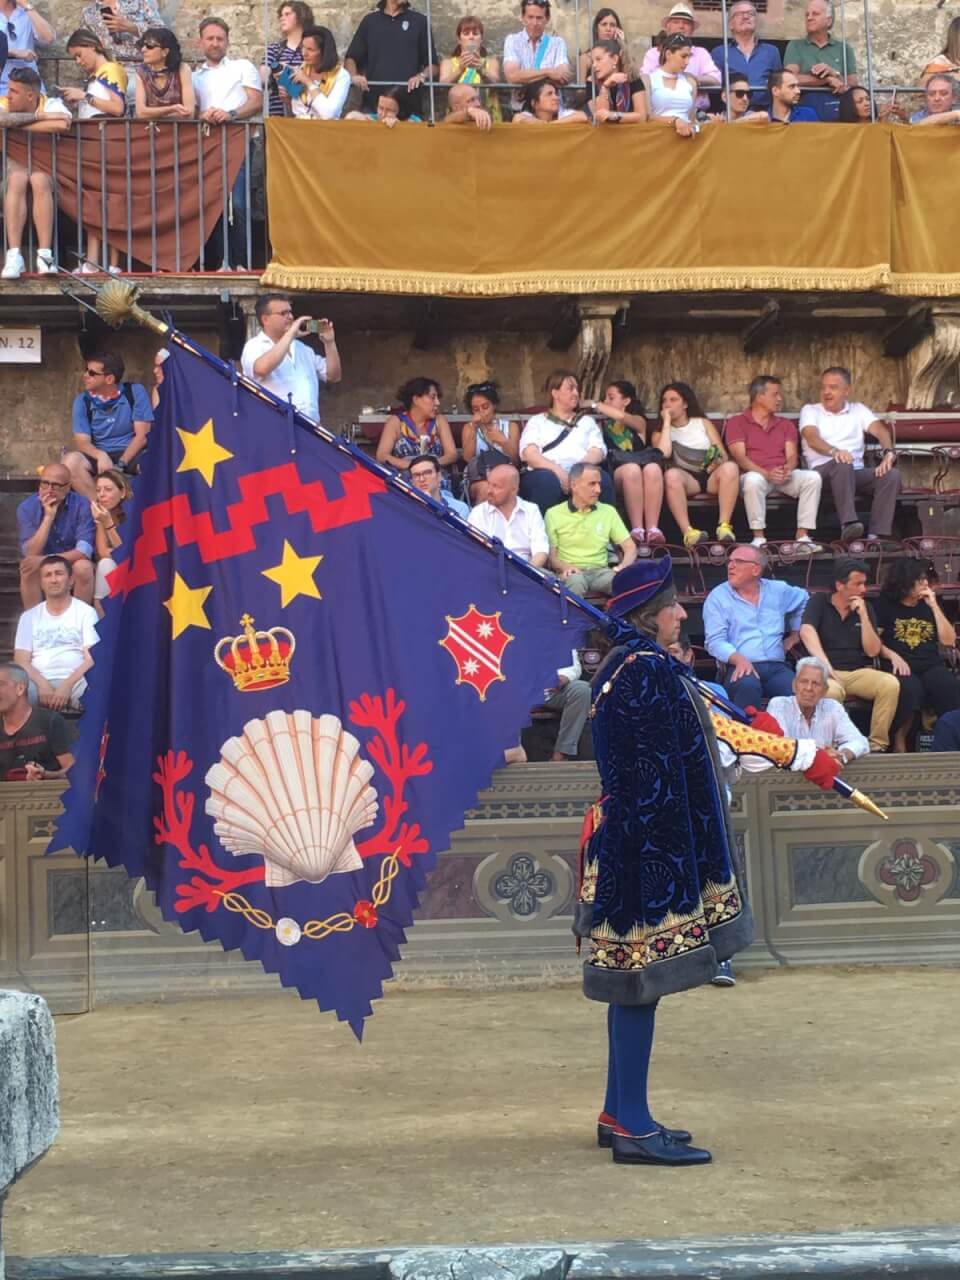 Horsing Around in Tights: The Palio Part 2